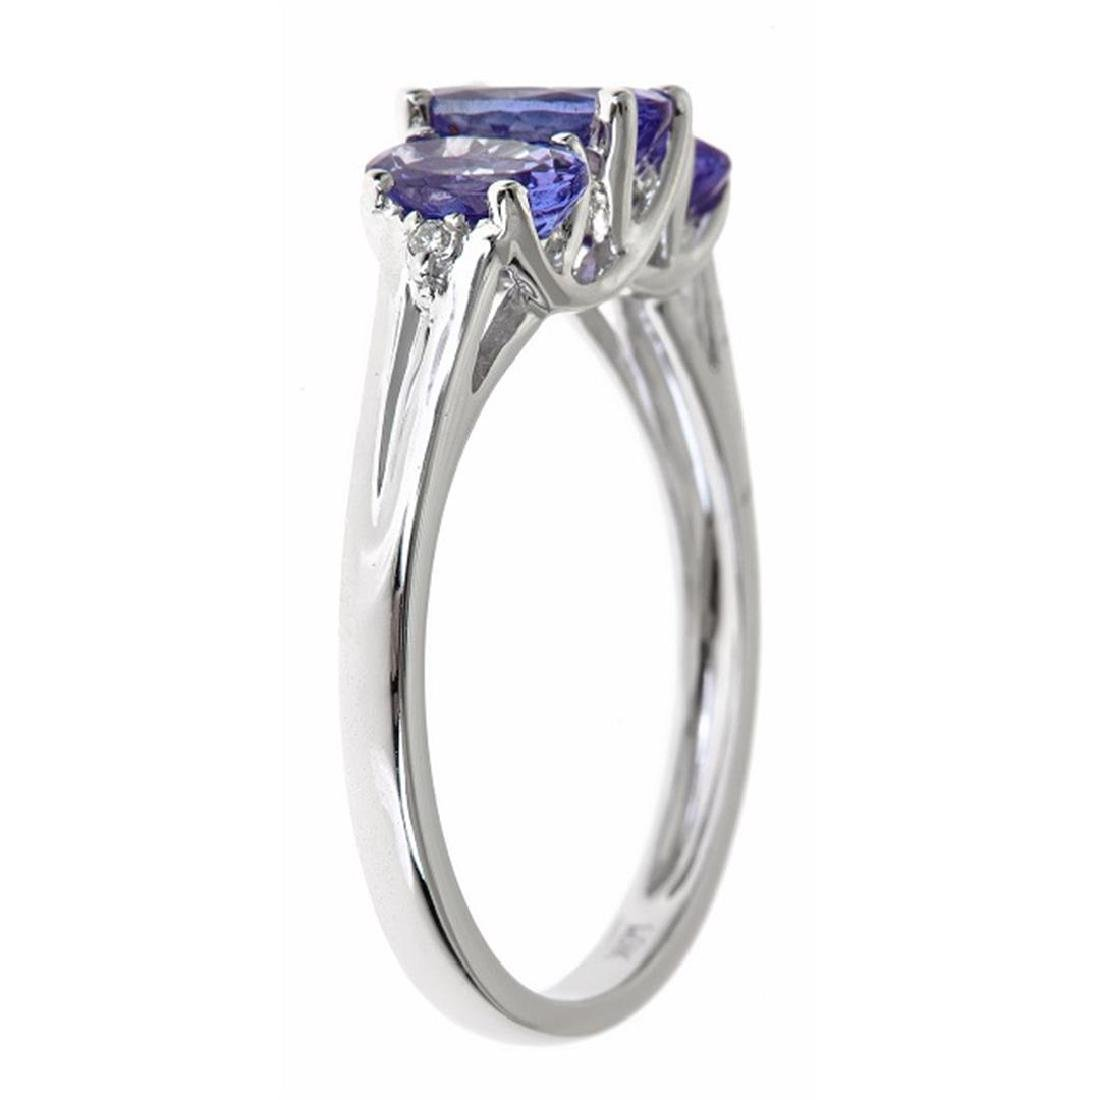 1.67 ctw Tanzanite and Diamond Ring - 10KT White Gold - 2